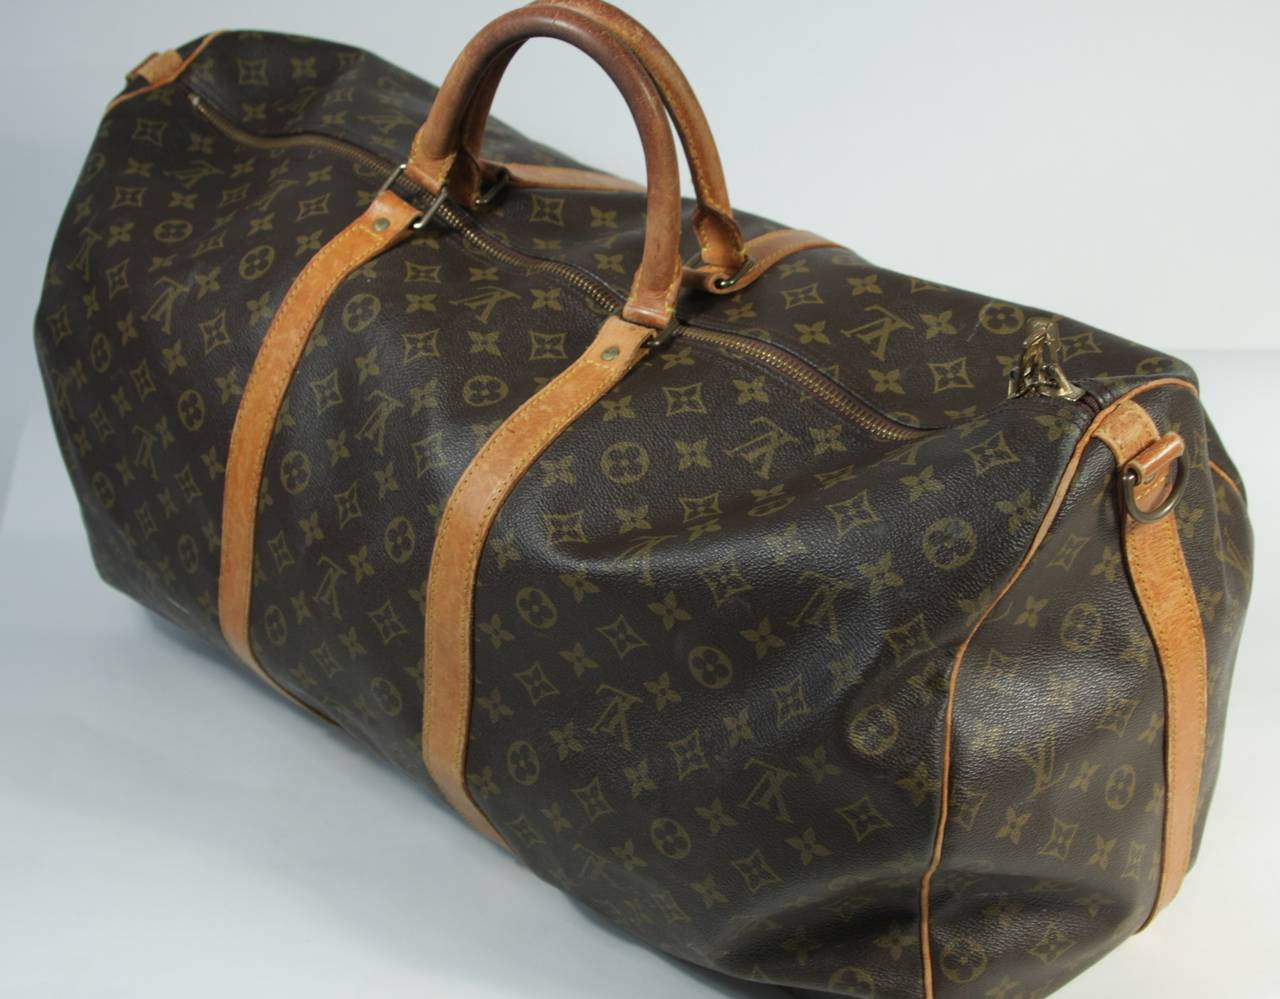 Louis Vuitton Vintage Monogram Large Duffle Carry On Bag 23 5